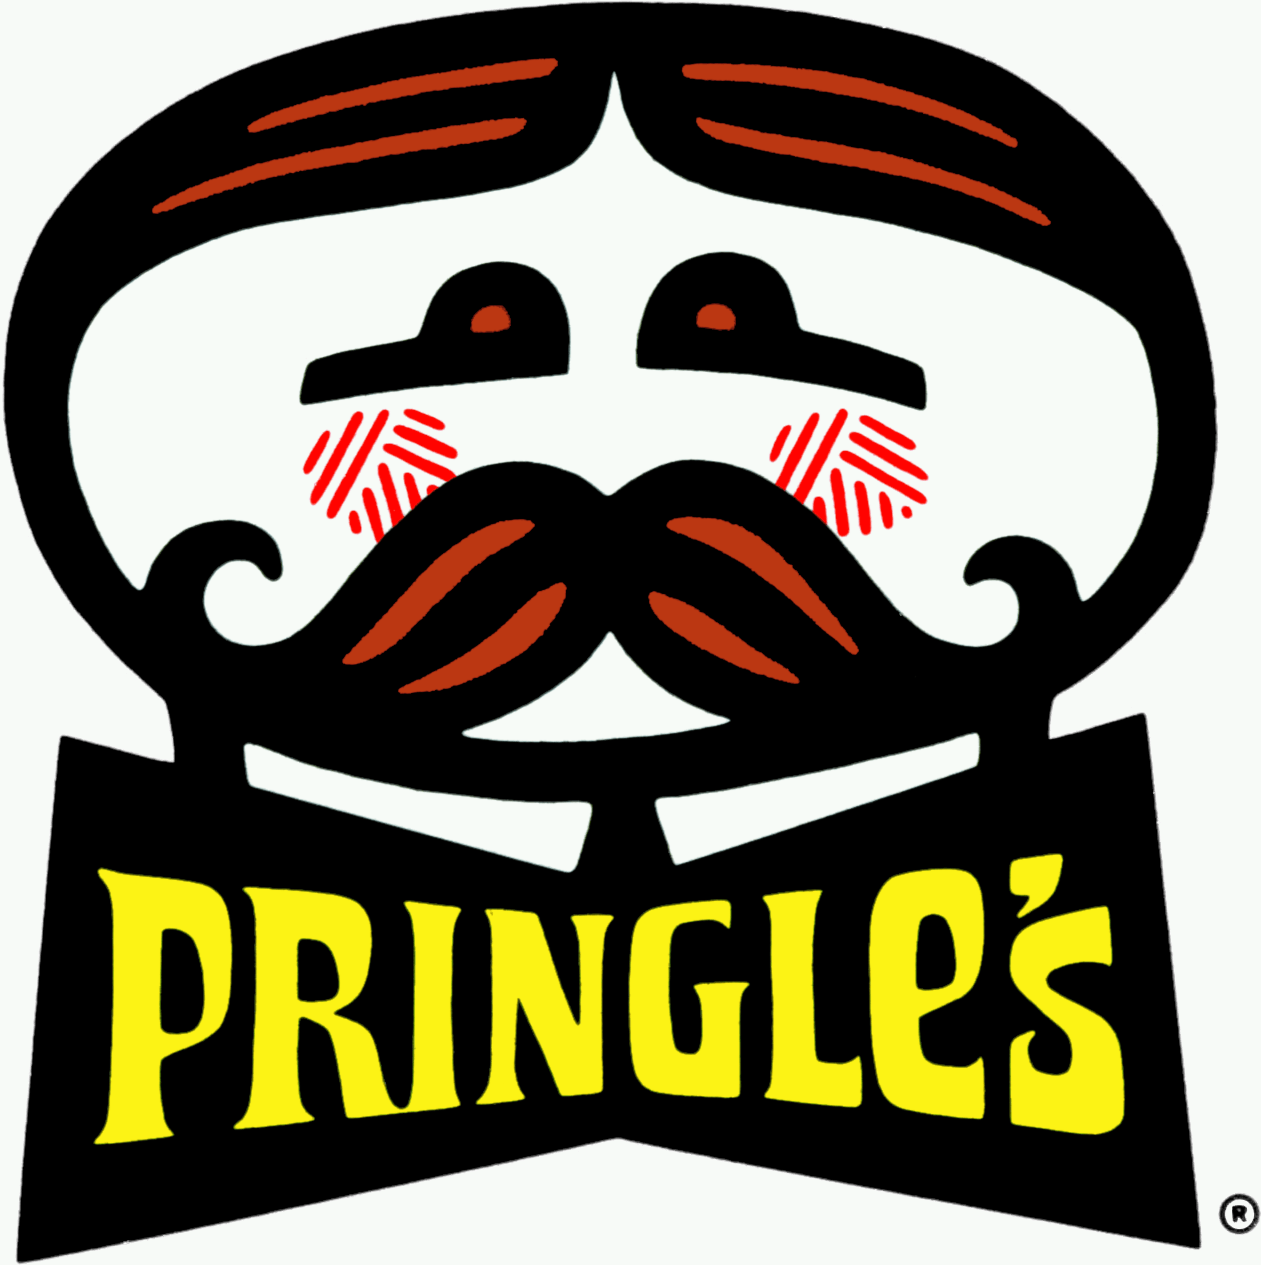 Pringles Logo - Pringles | Logopedia | FANDOM powered by Wikia